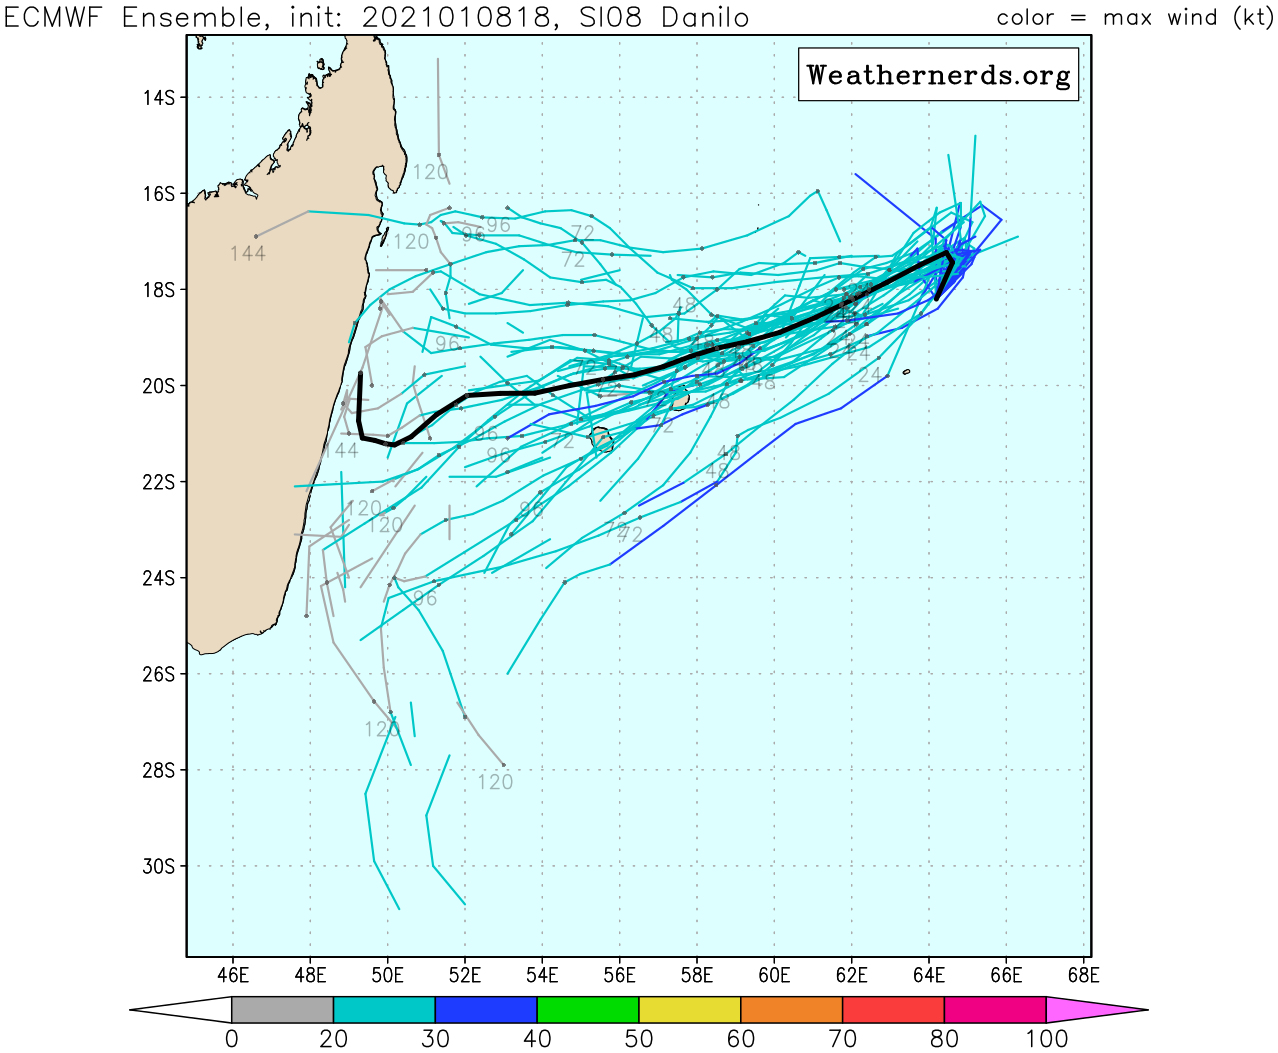 08/18UTC. THE EUROPEAN MODEL TRACKS A WEAK SYSTEM TO THE NORTH OF THE MAURITIUS/RÉUNION AREA